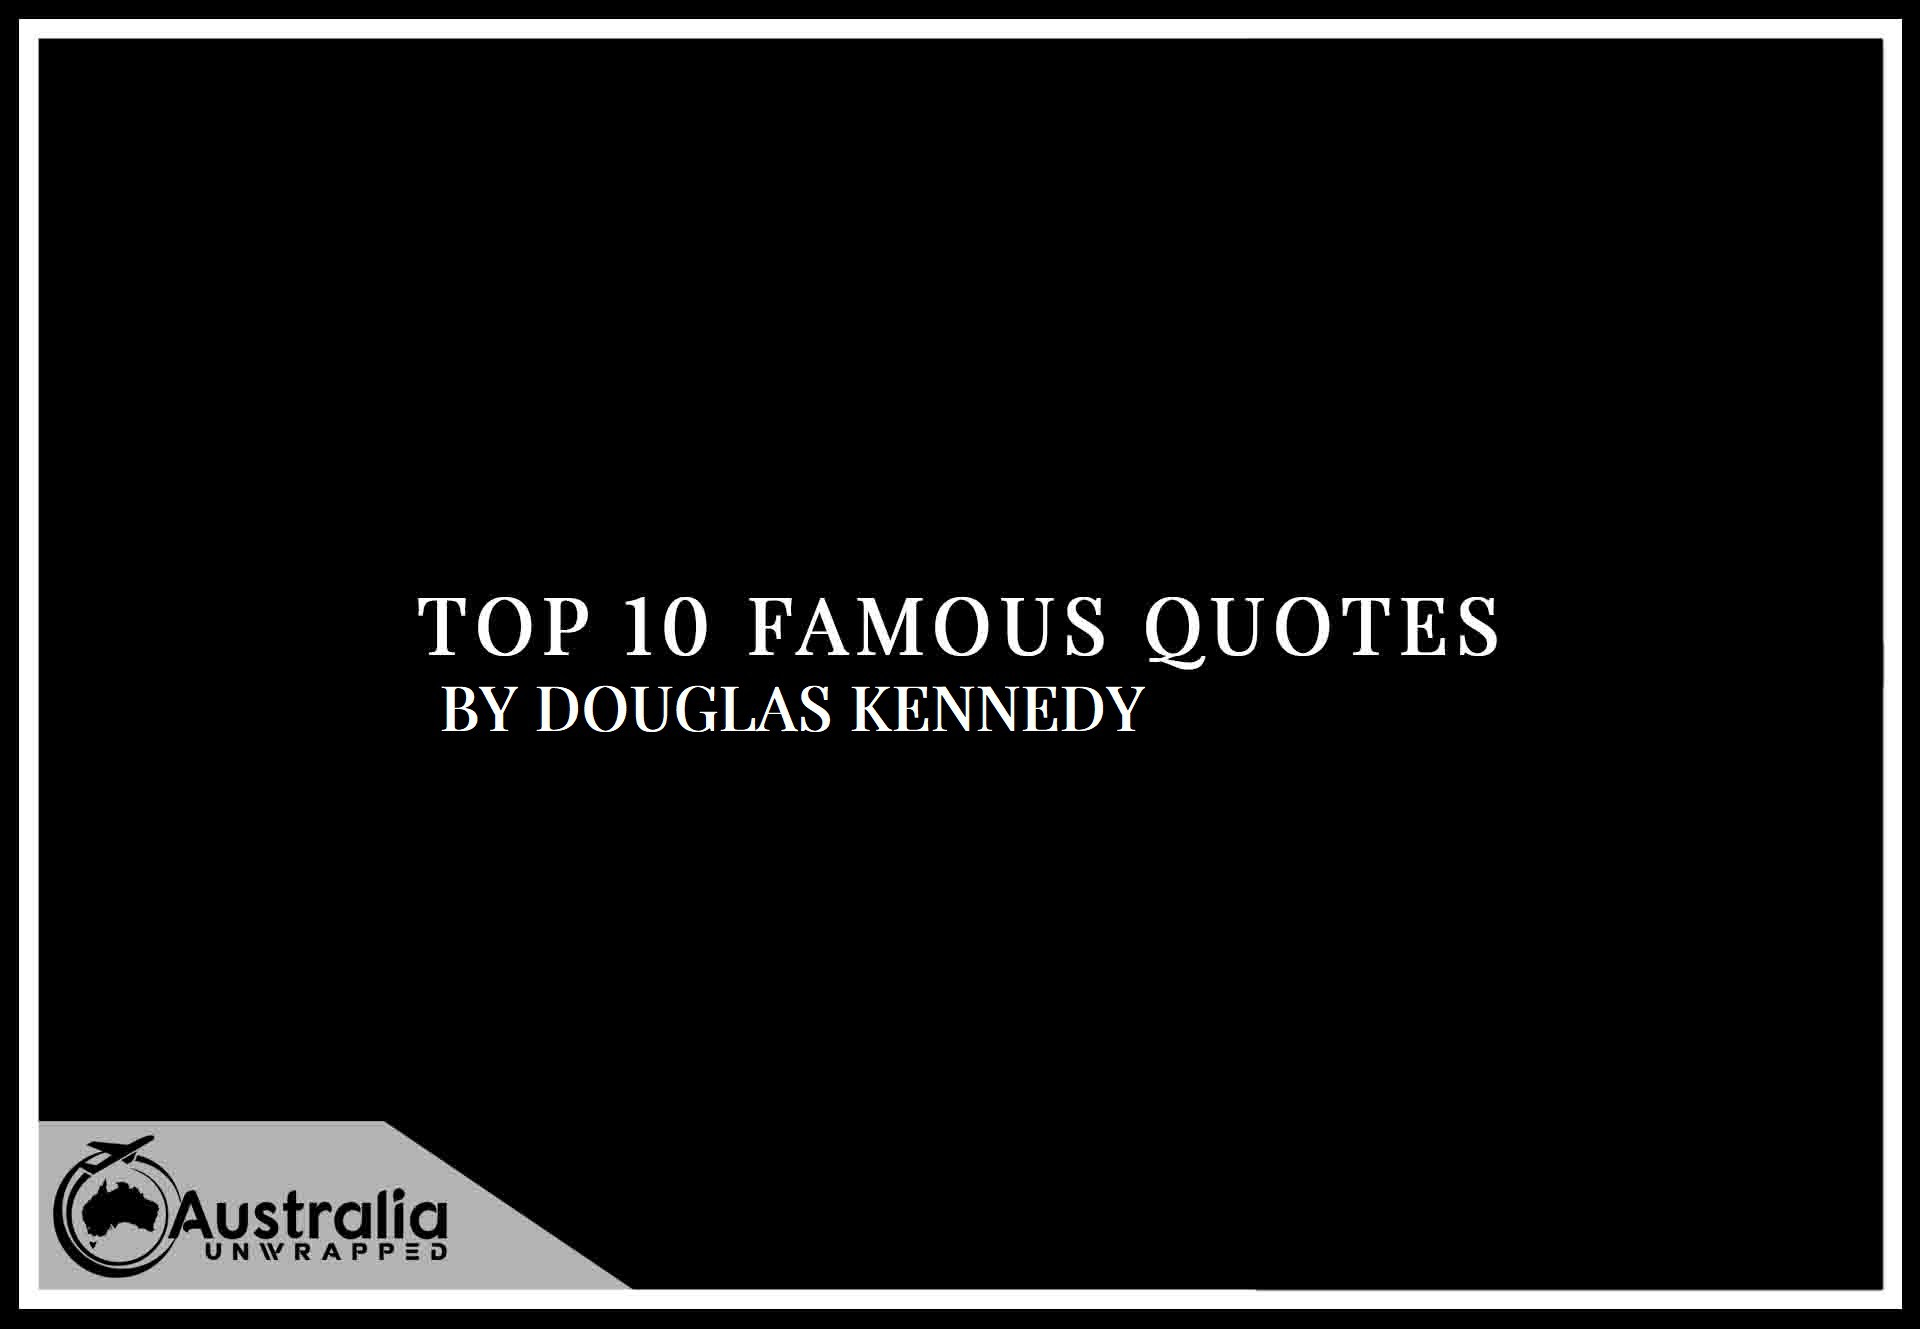 Top 10 Famous Quotes by Author Douglas Kennedy